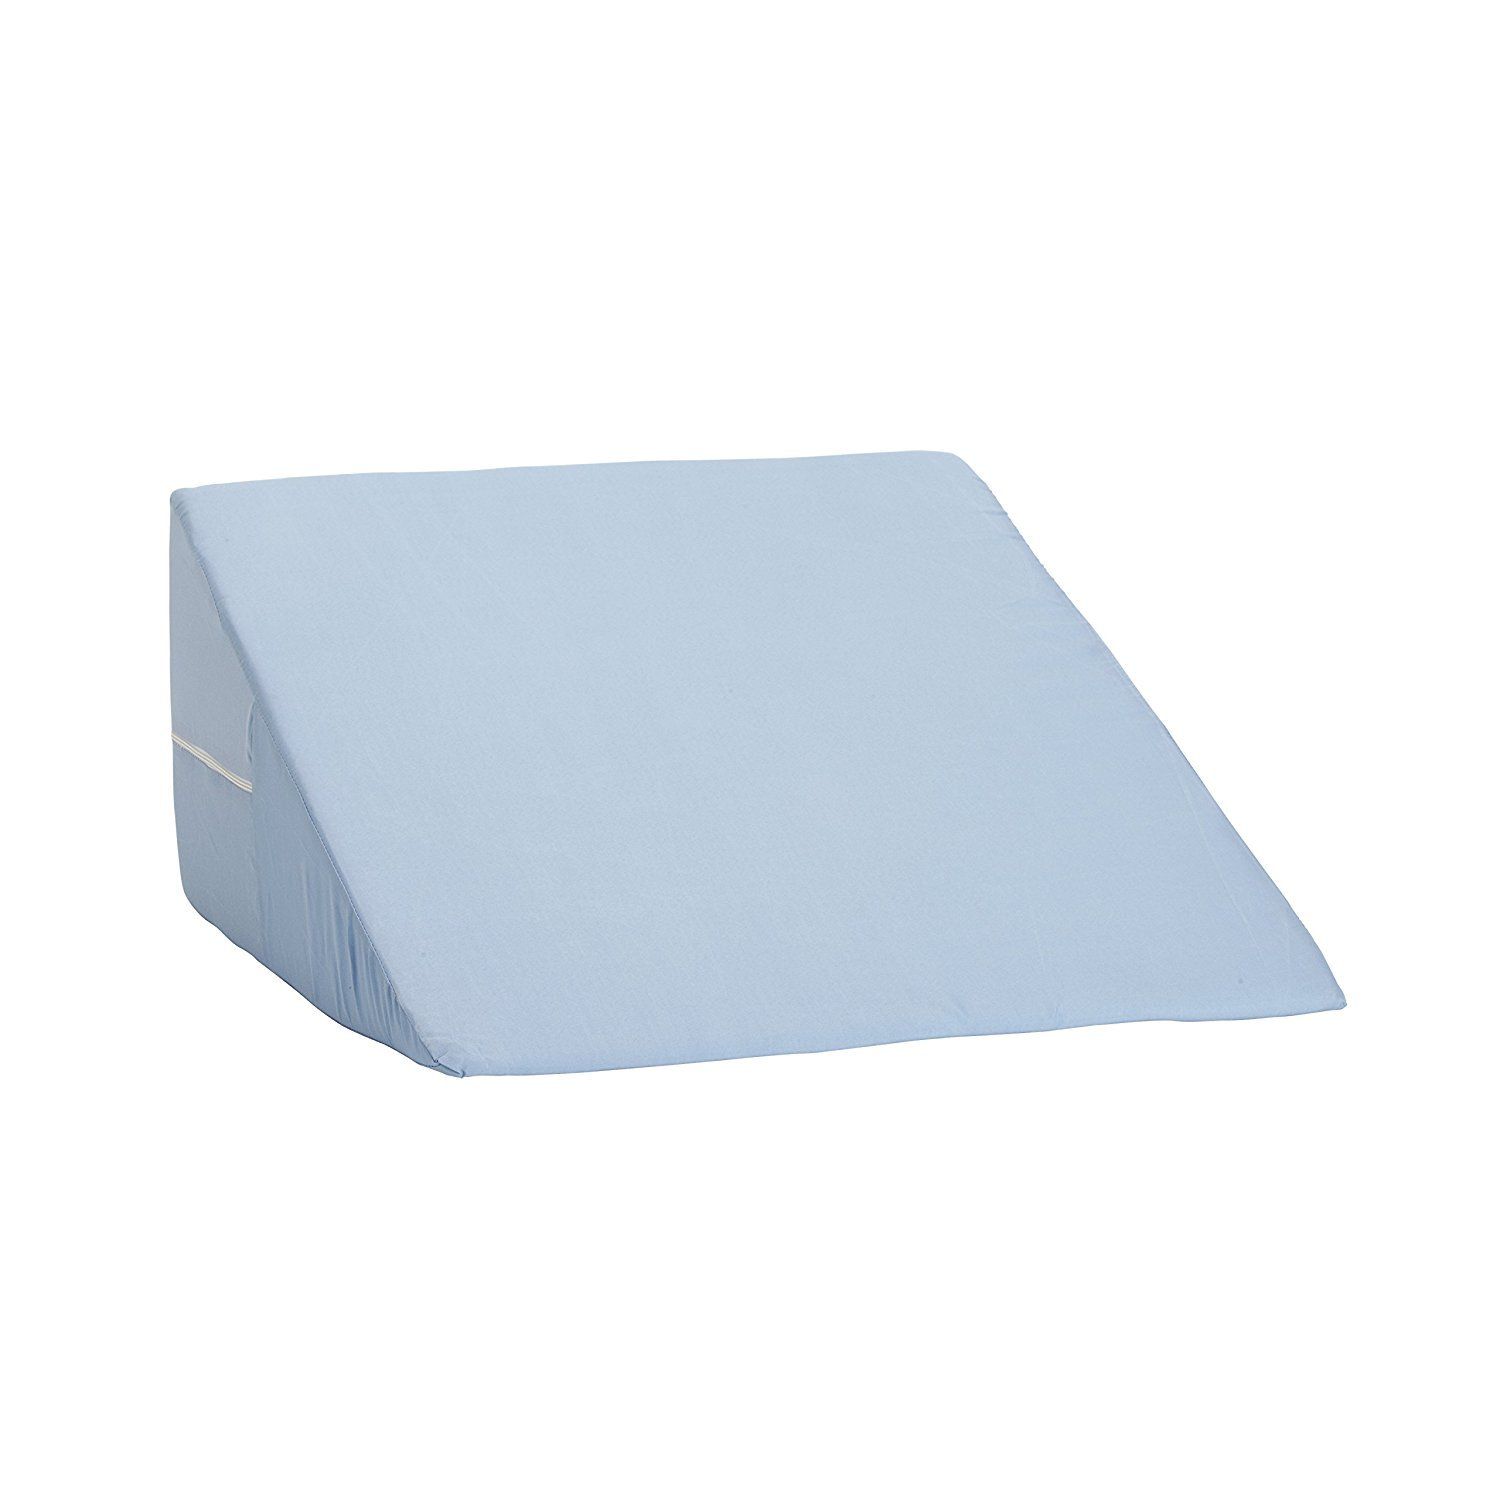 DRIVE Bed Wedge 10